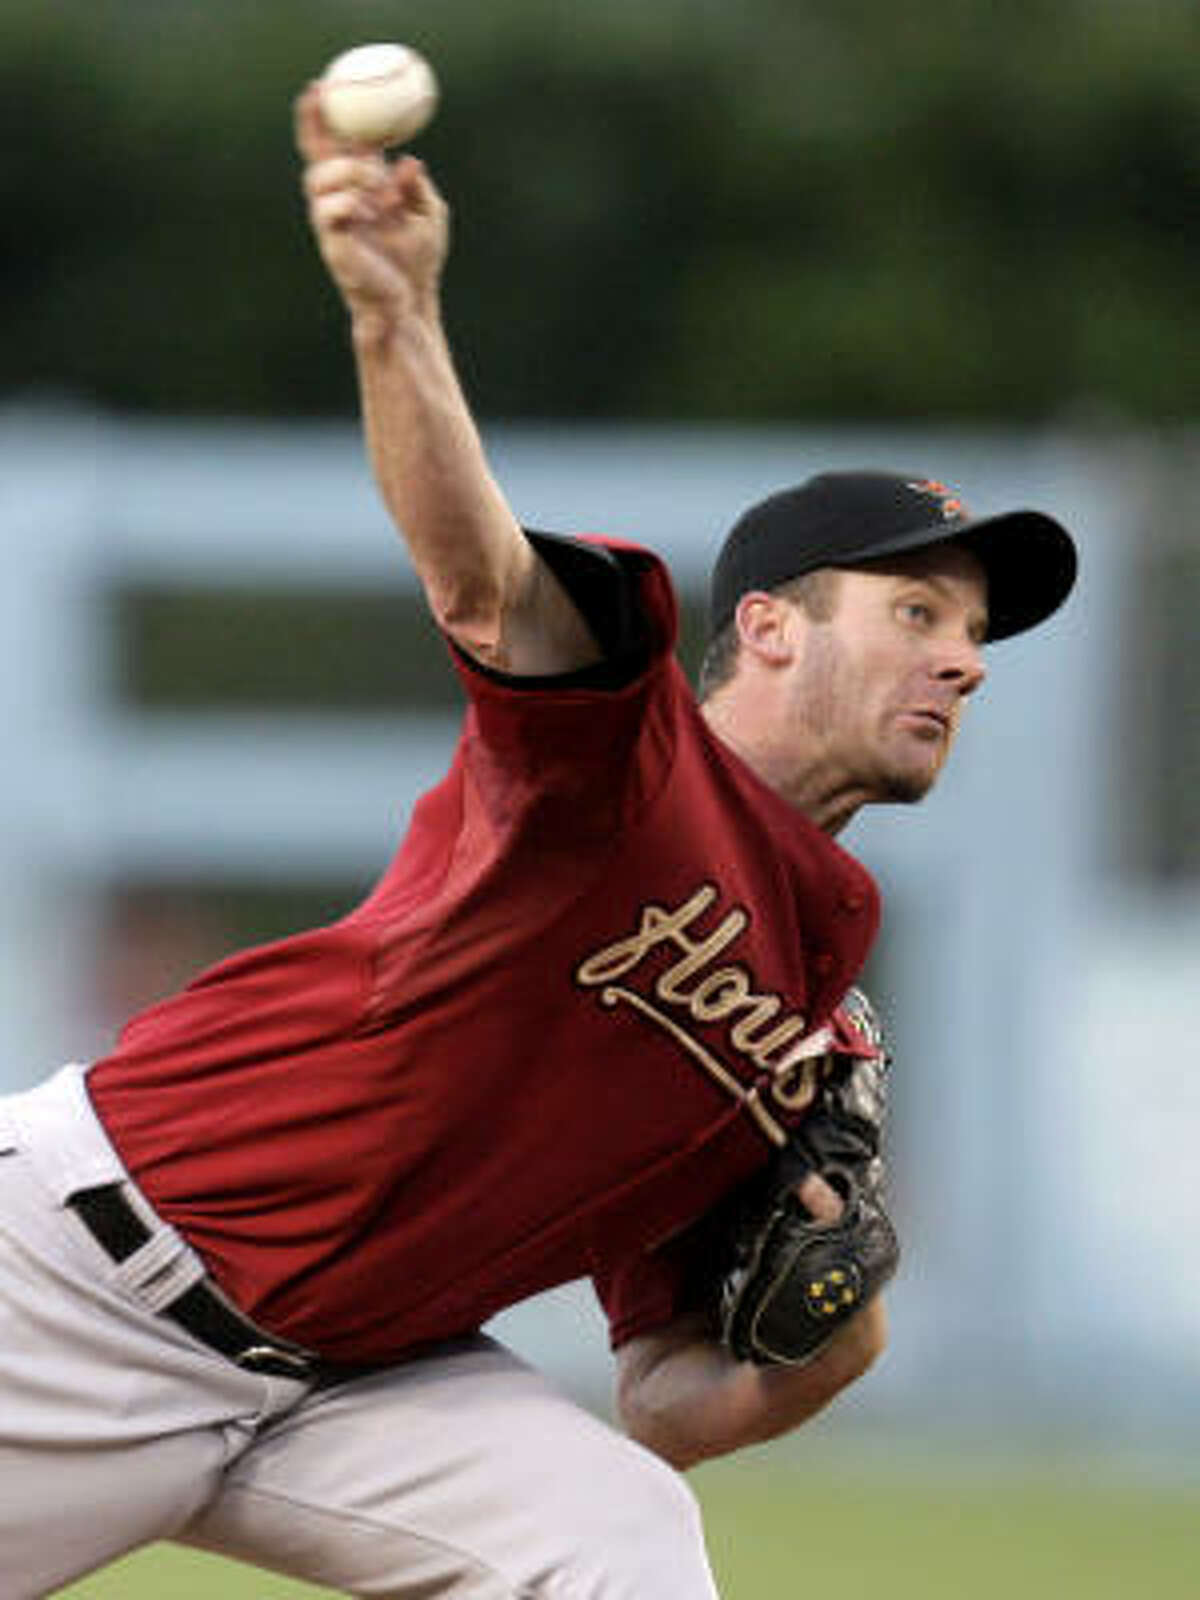 Astros starter Roy Oswalt held the Dodgers to one run on four hits in a complete game.